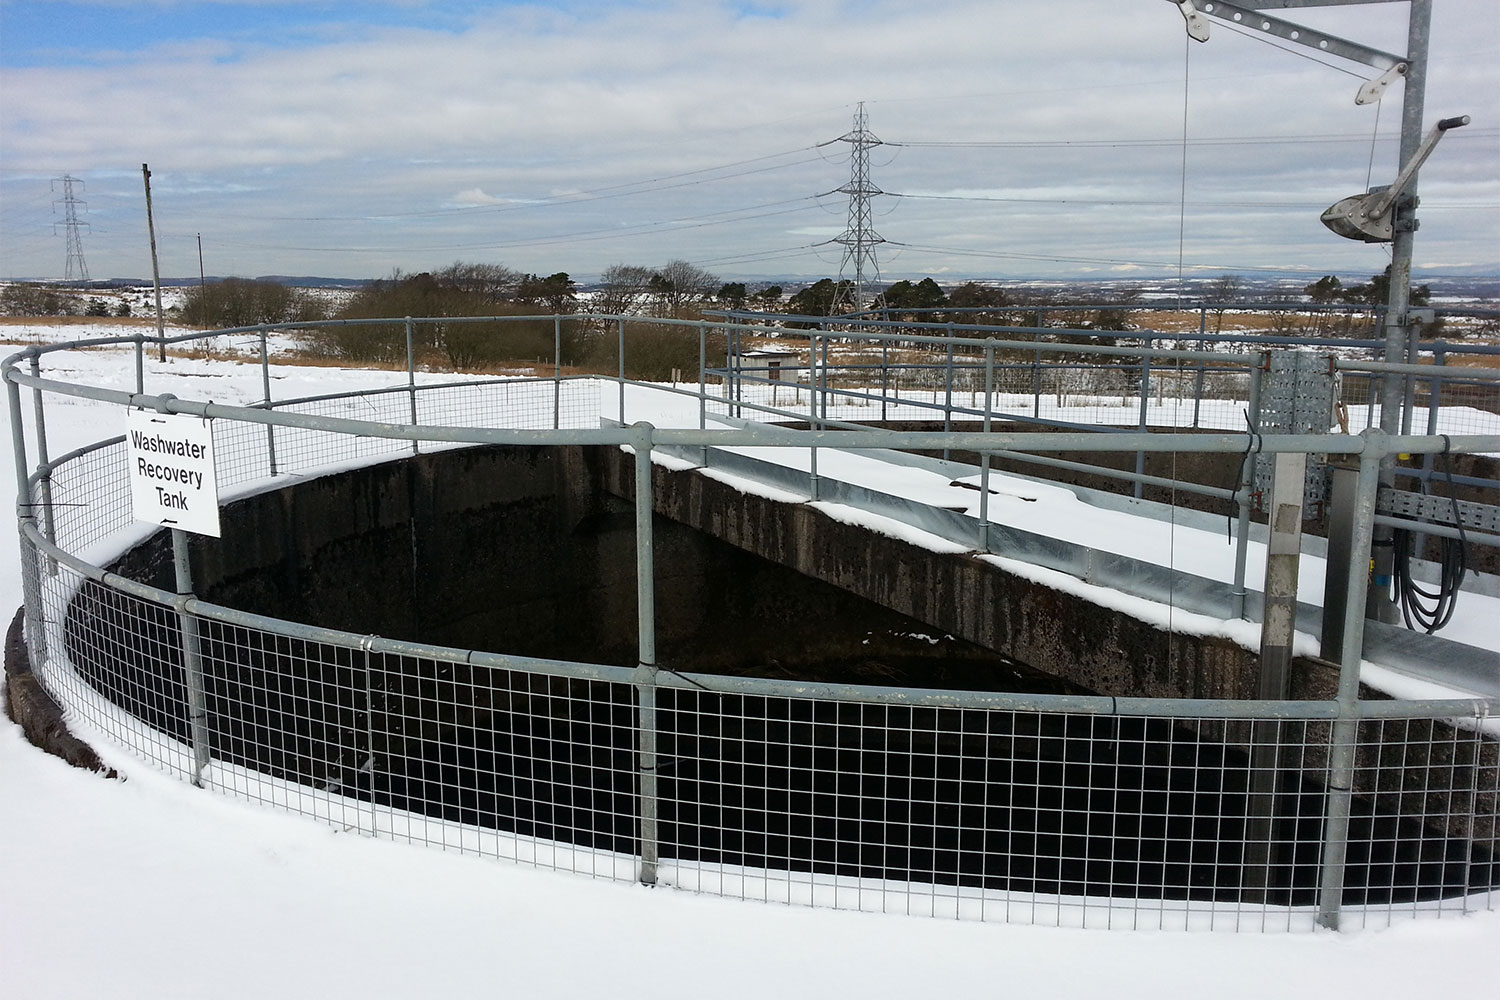 Pateshill Water Treatment Works